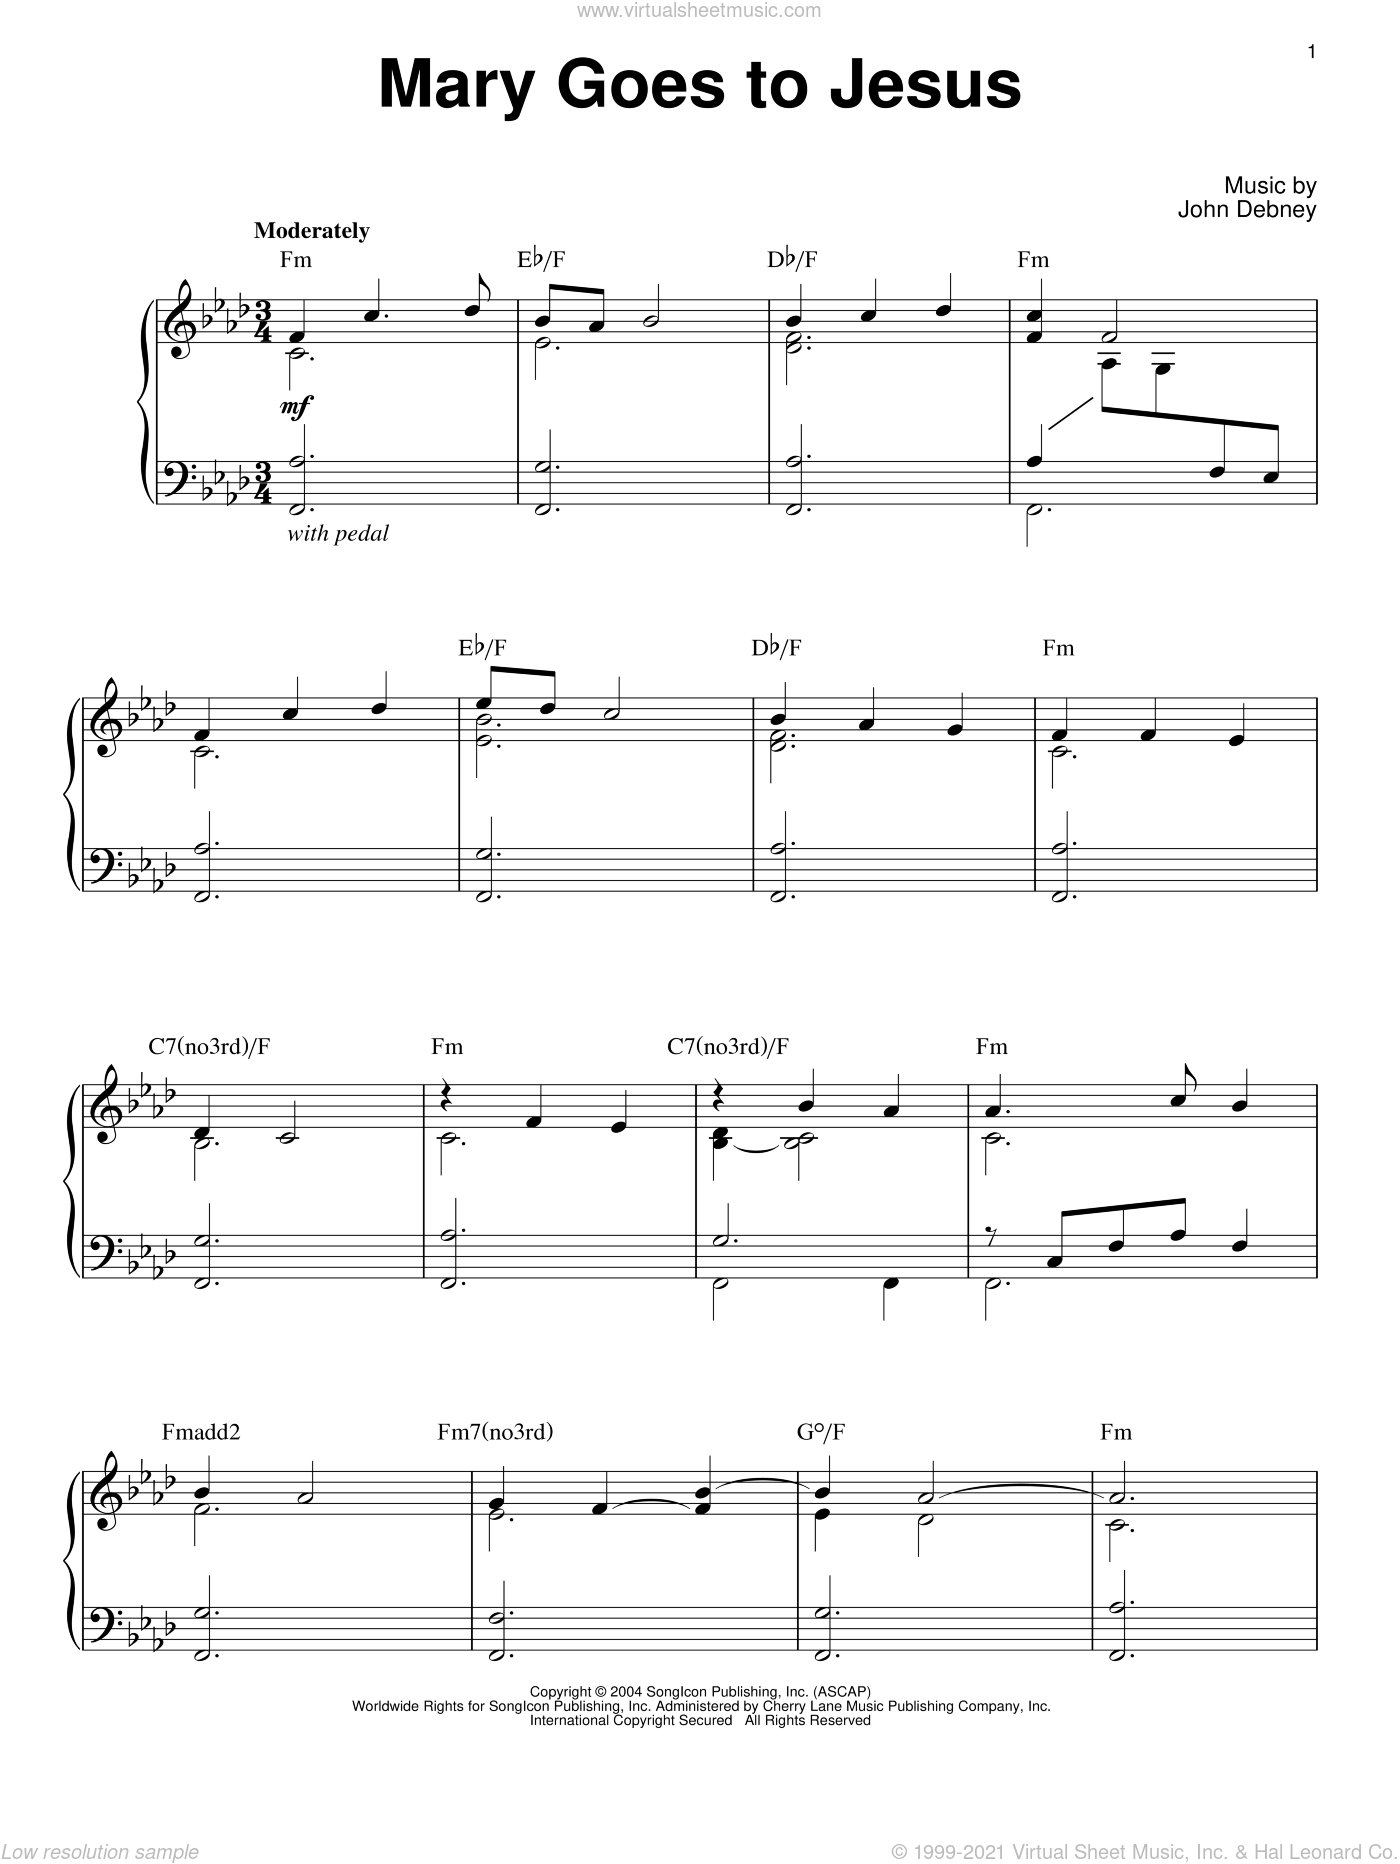 Mary Goes To Jesus sheet music for piano solo by John Debney. Score Image Preview.